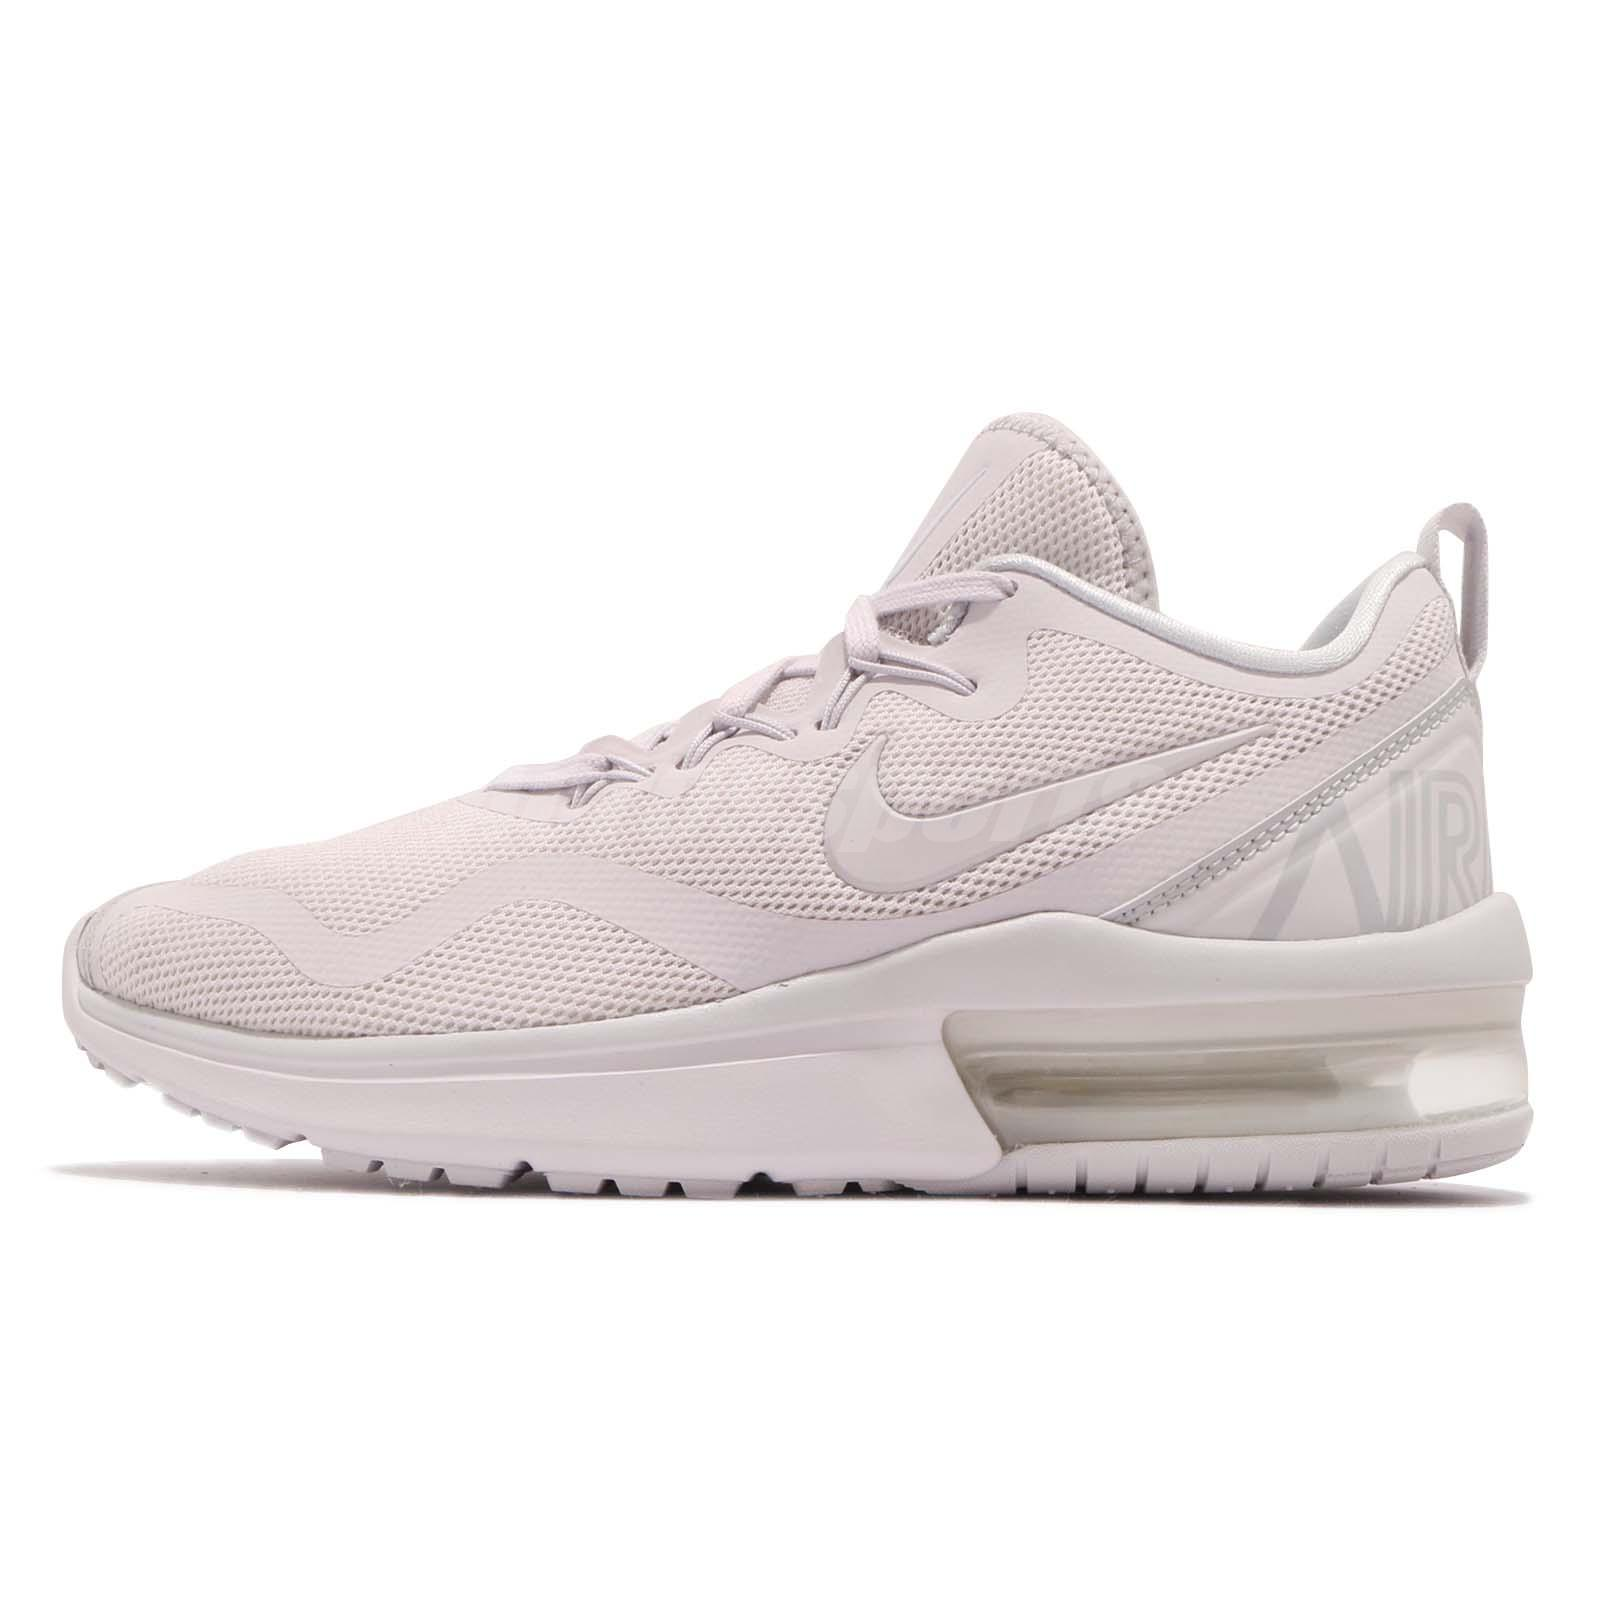 afd8149a7459 Nike Wmns Air Max Fury White Vast Grey Pure Platinum Women Shoes AA5740-100